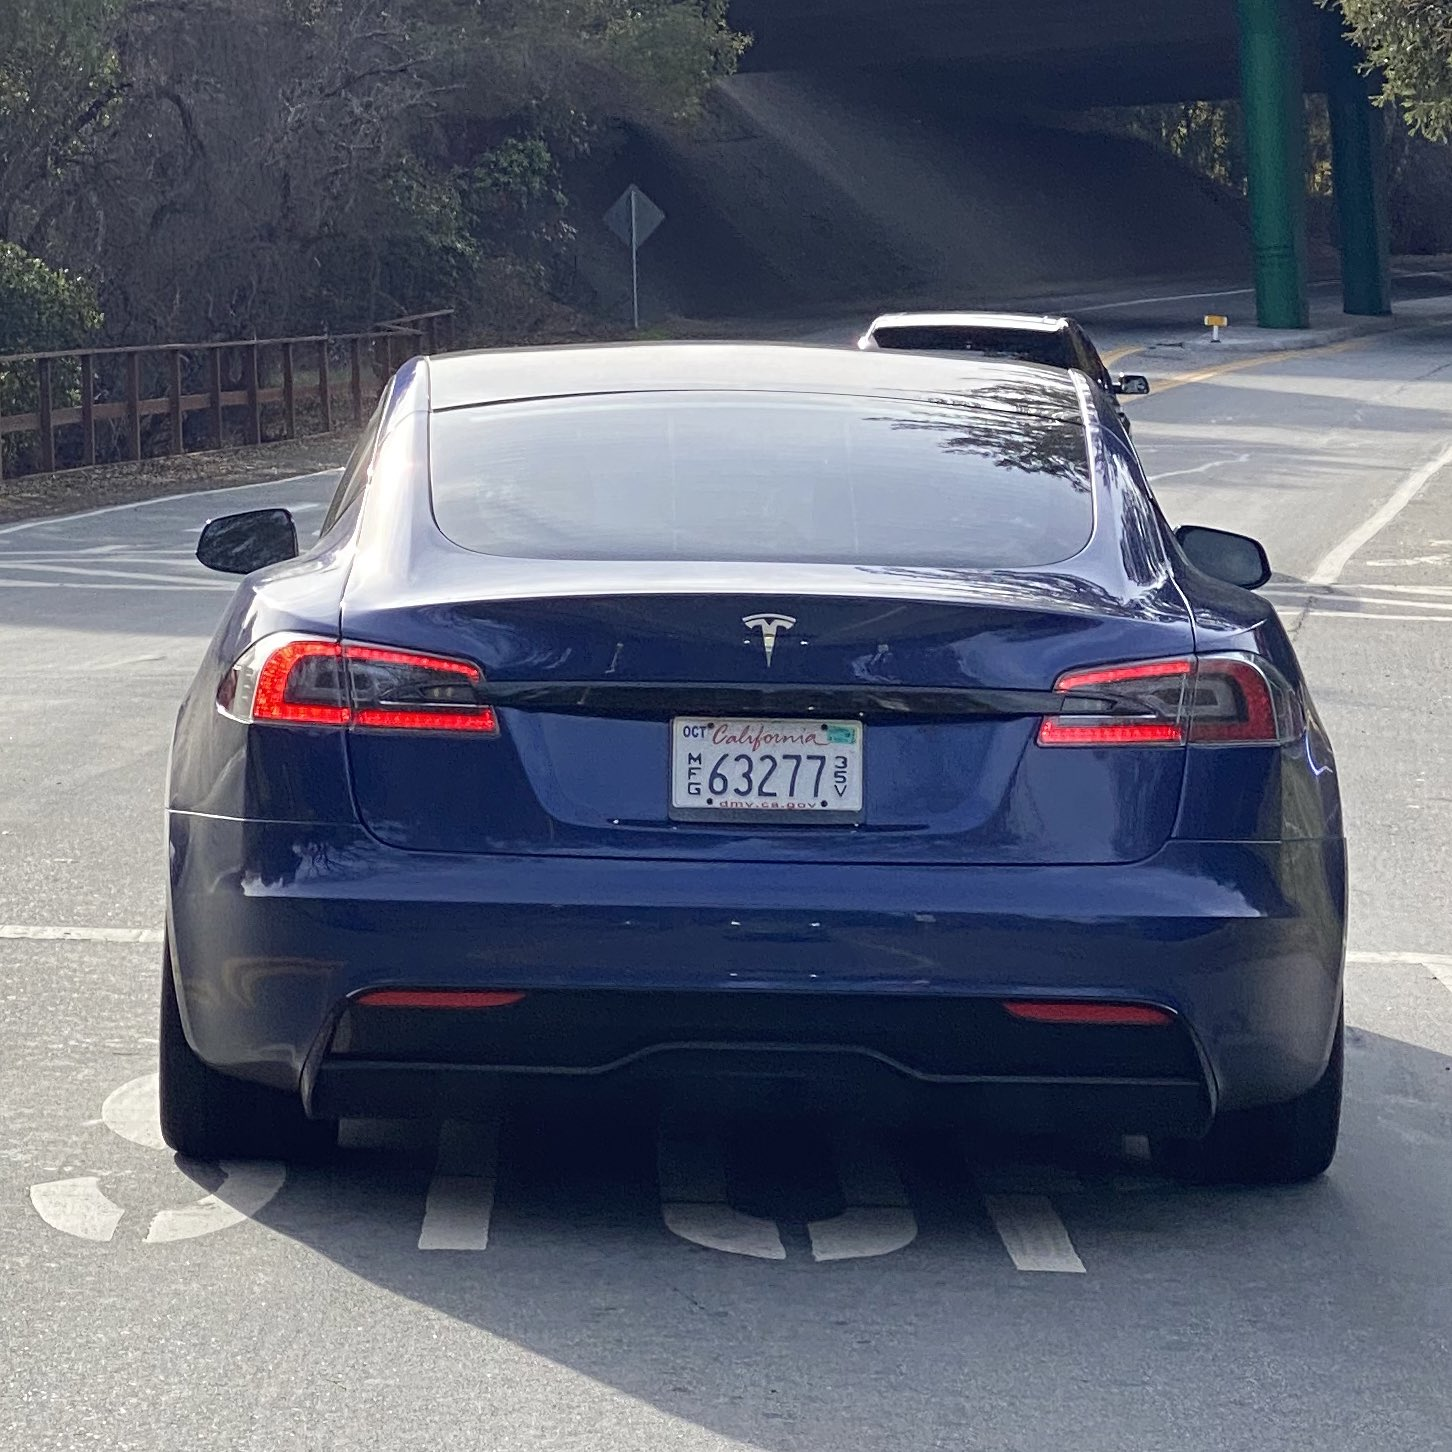 Tesla Model S Refresh (Photo: Ryan Levenson of The Kilowatts)